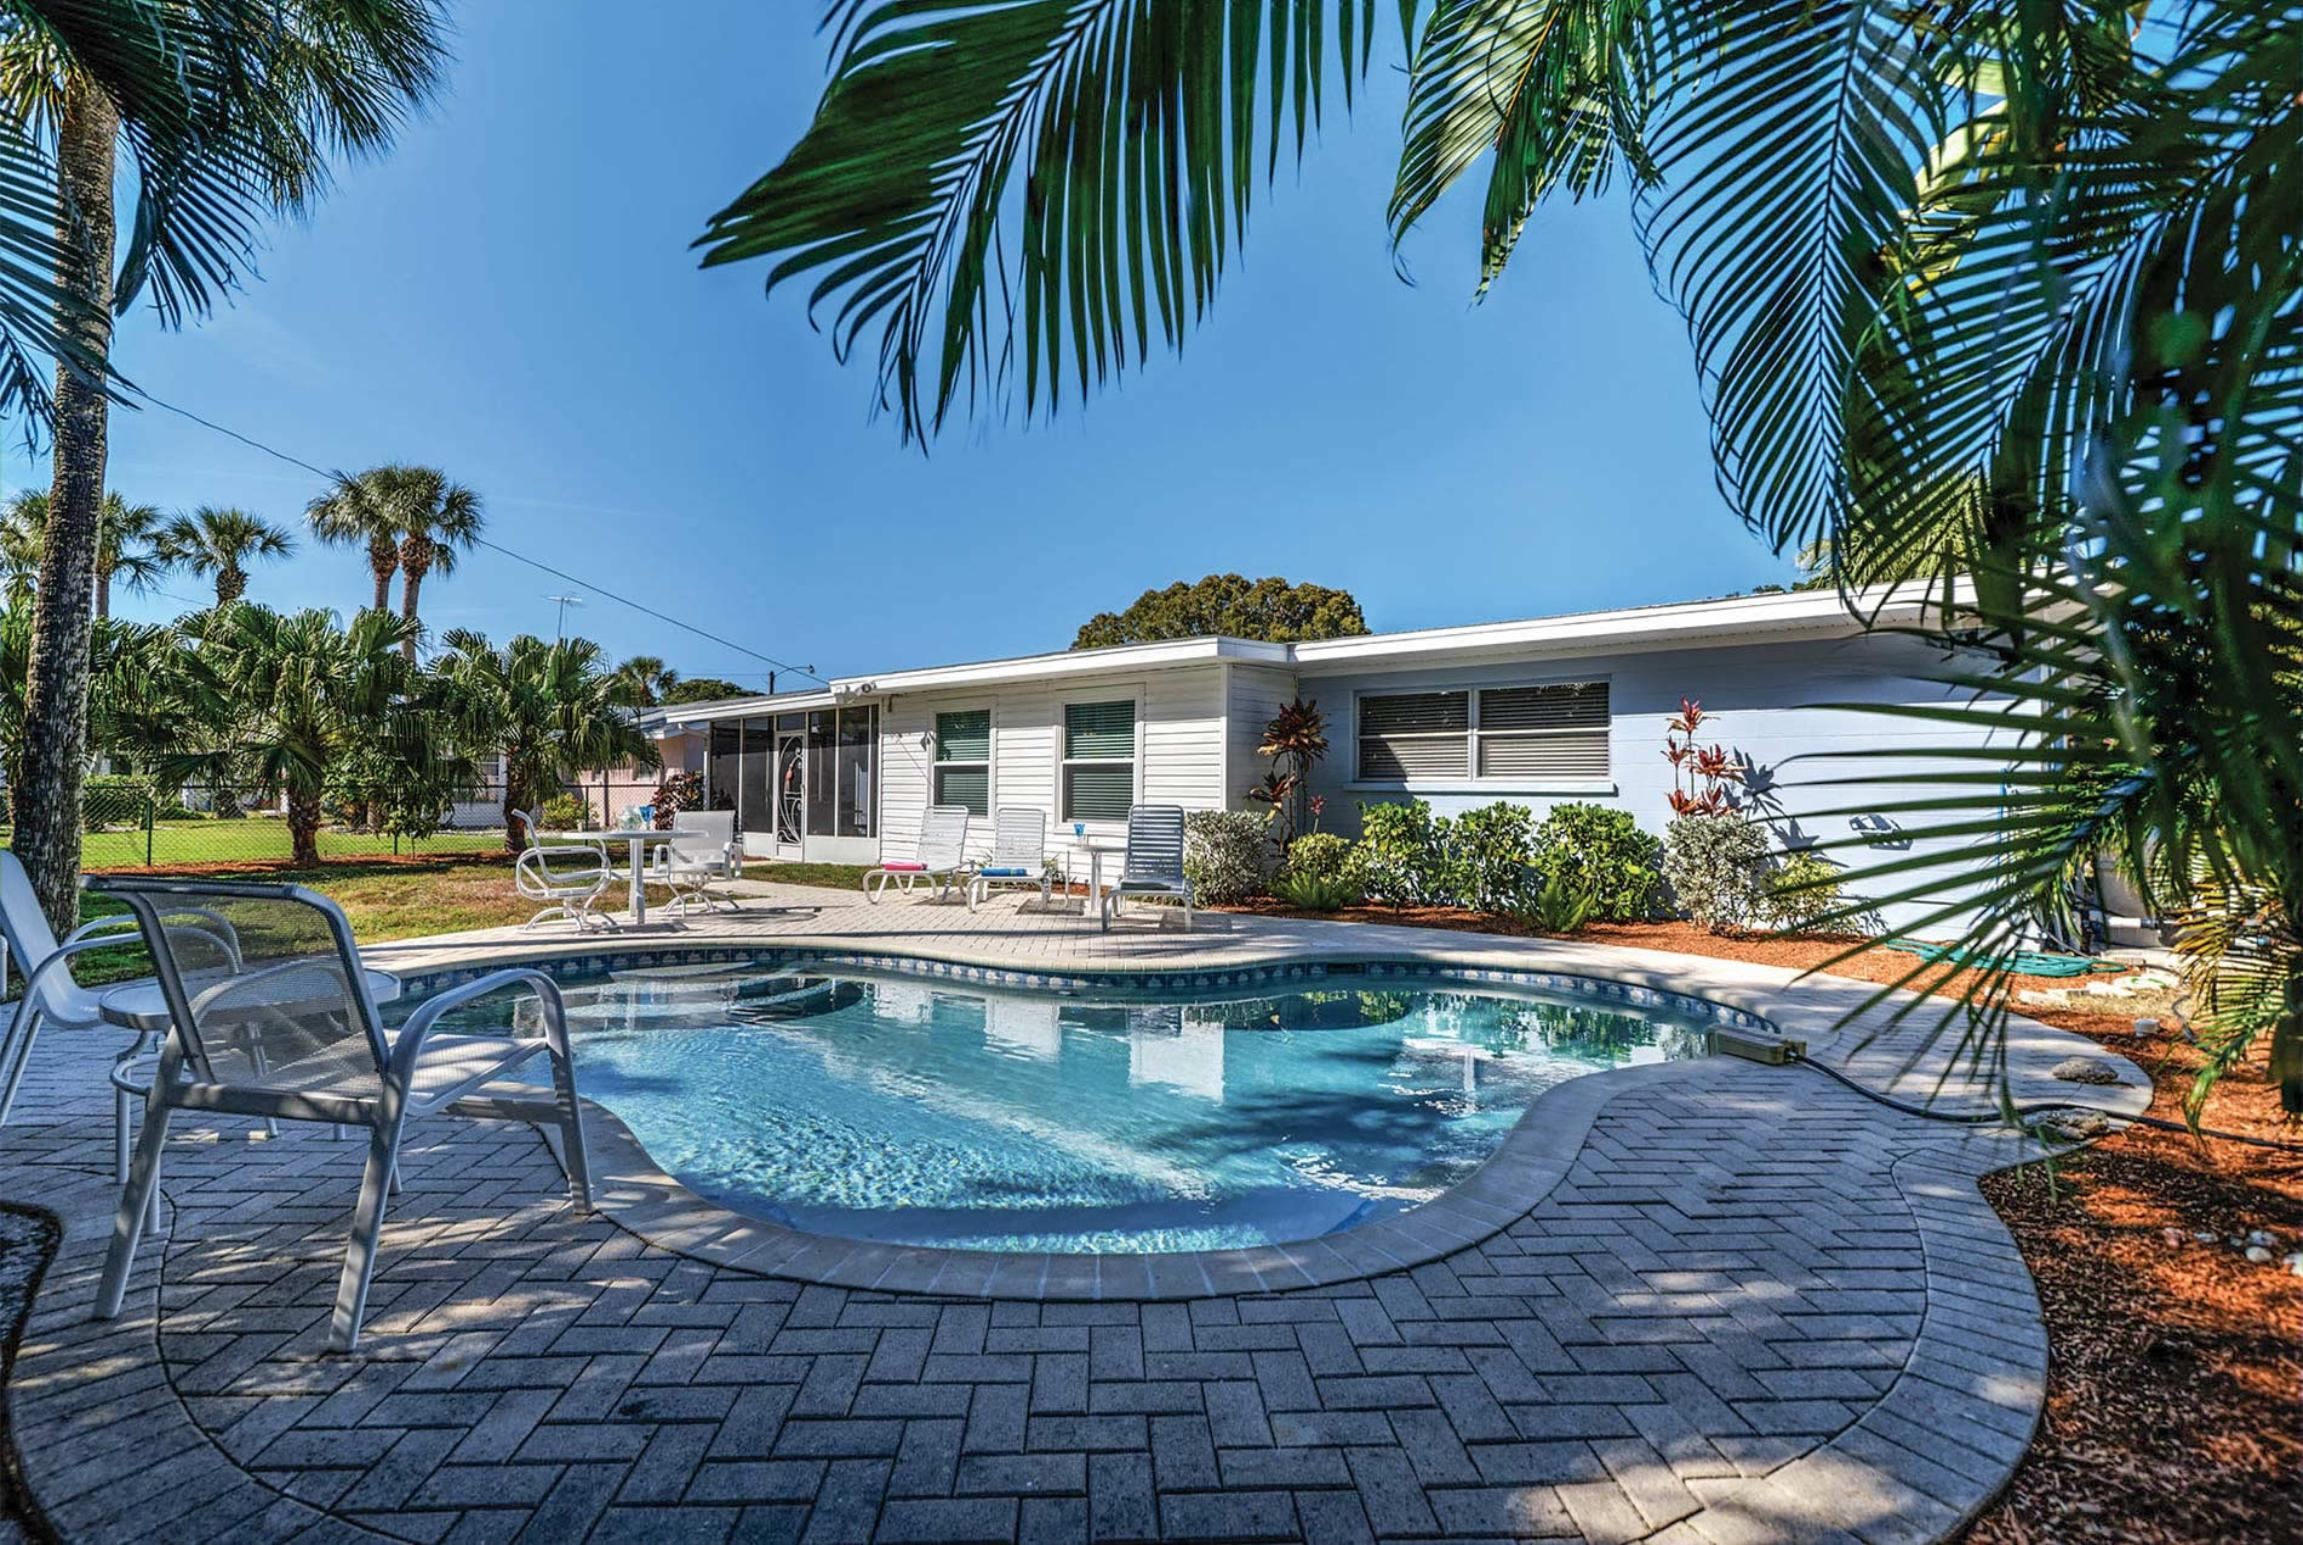 Read more about 405 Bay Palms villa